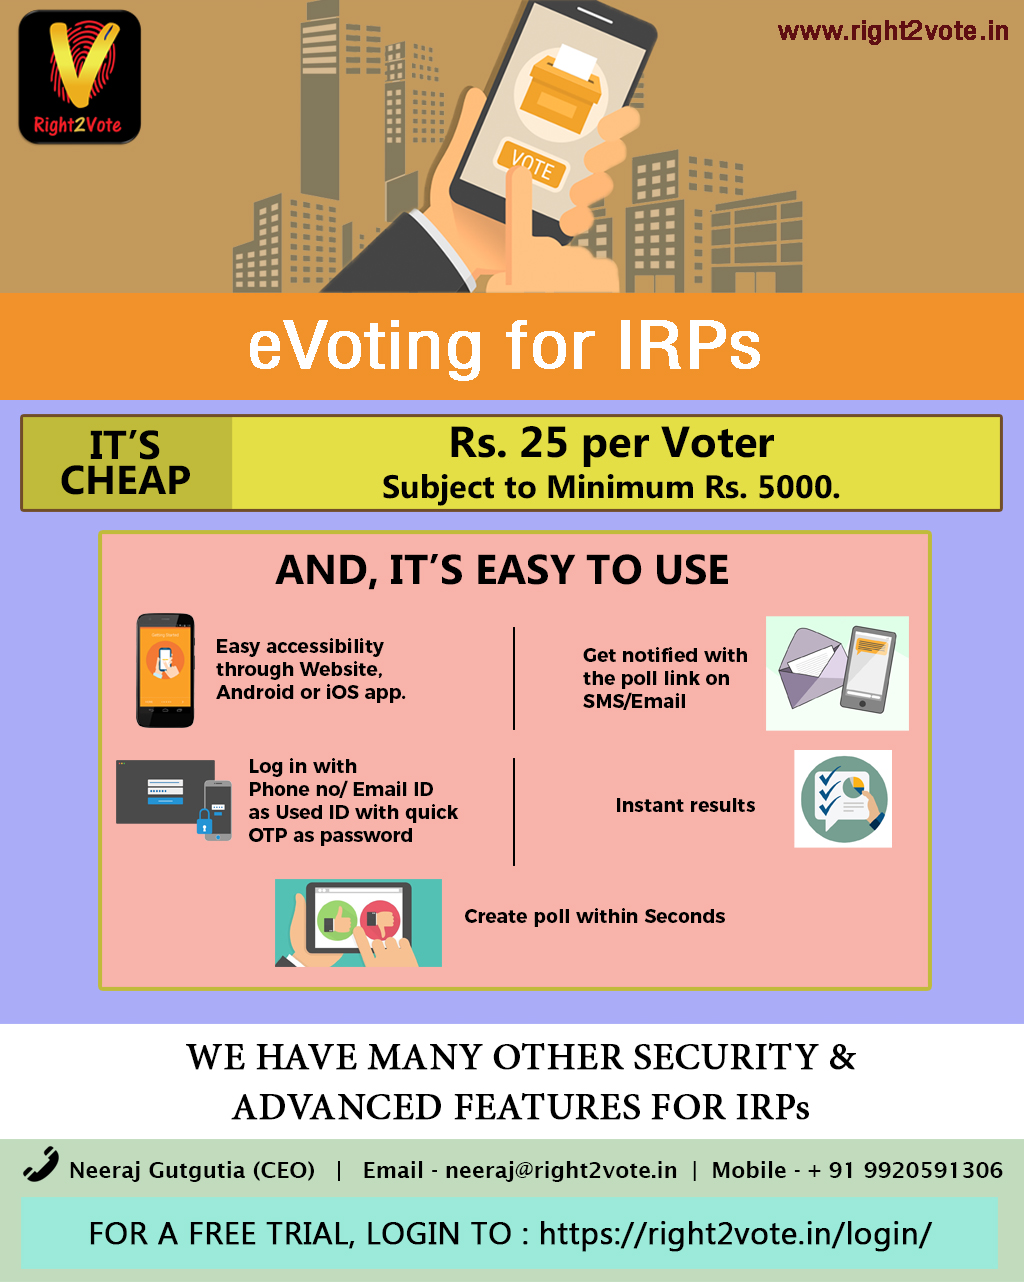 eVoting for IRPs